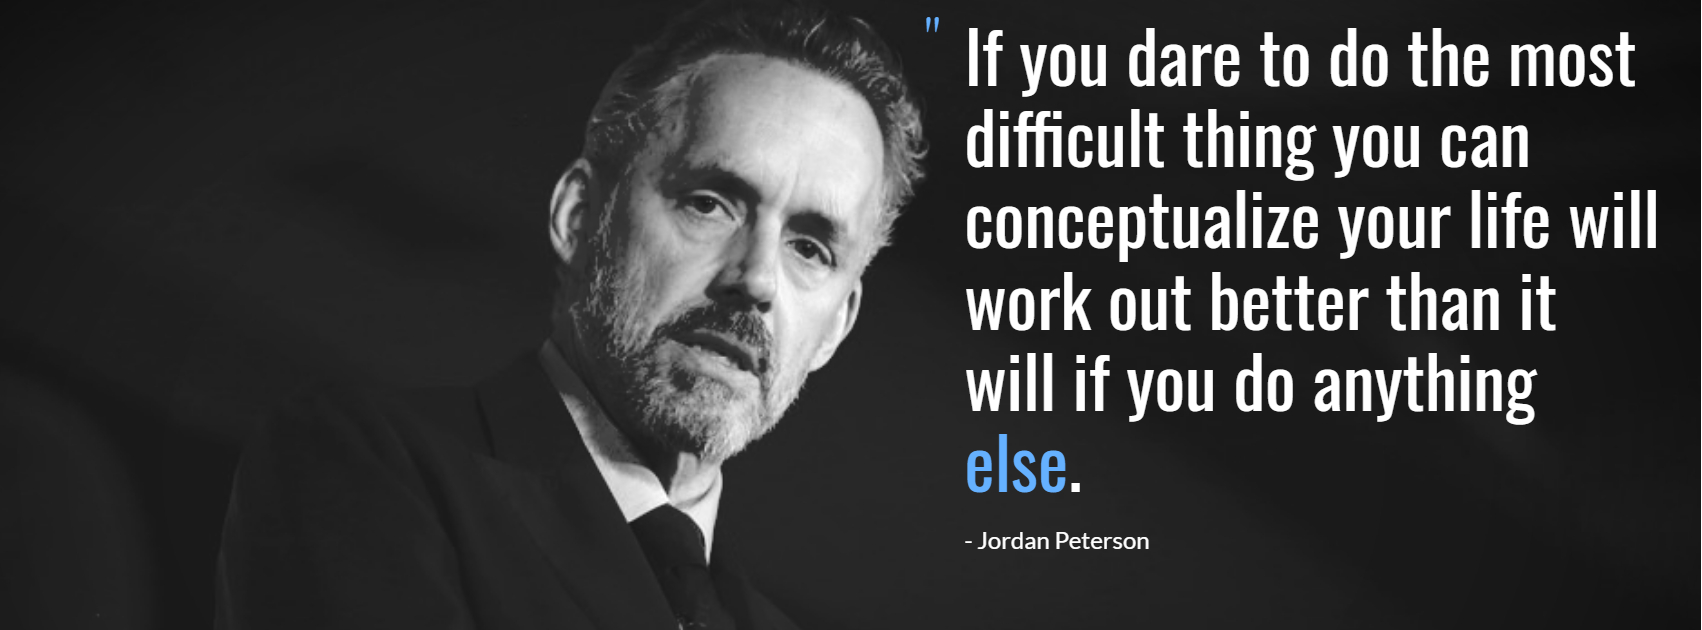 jordan-peterson-top-inspirationalquotes